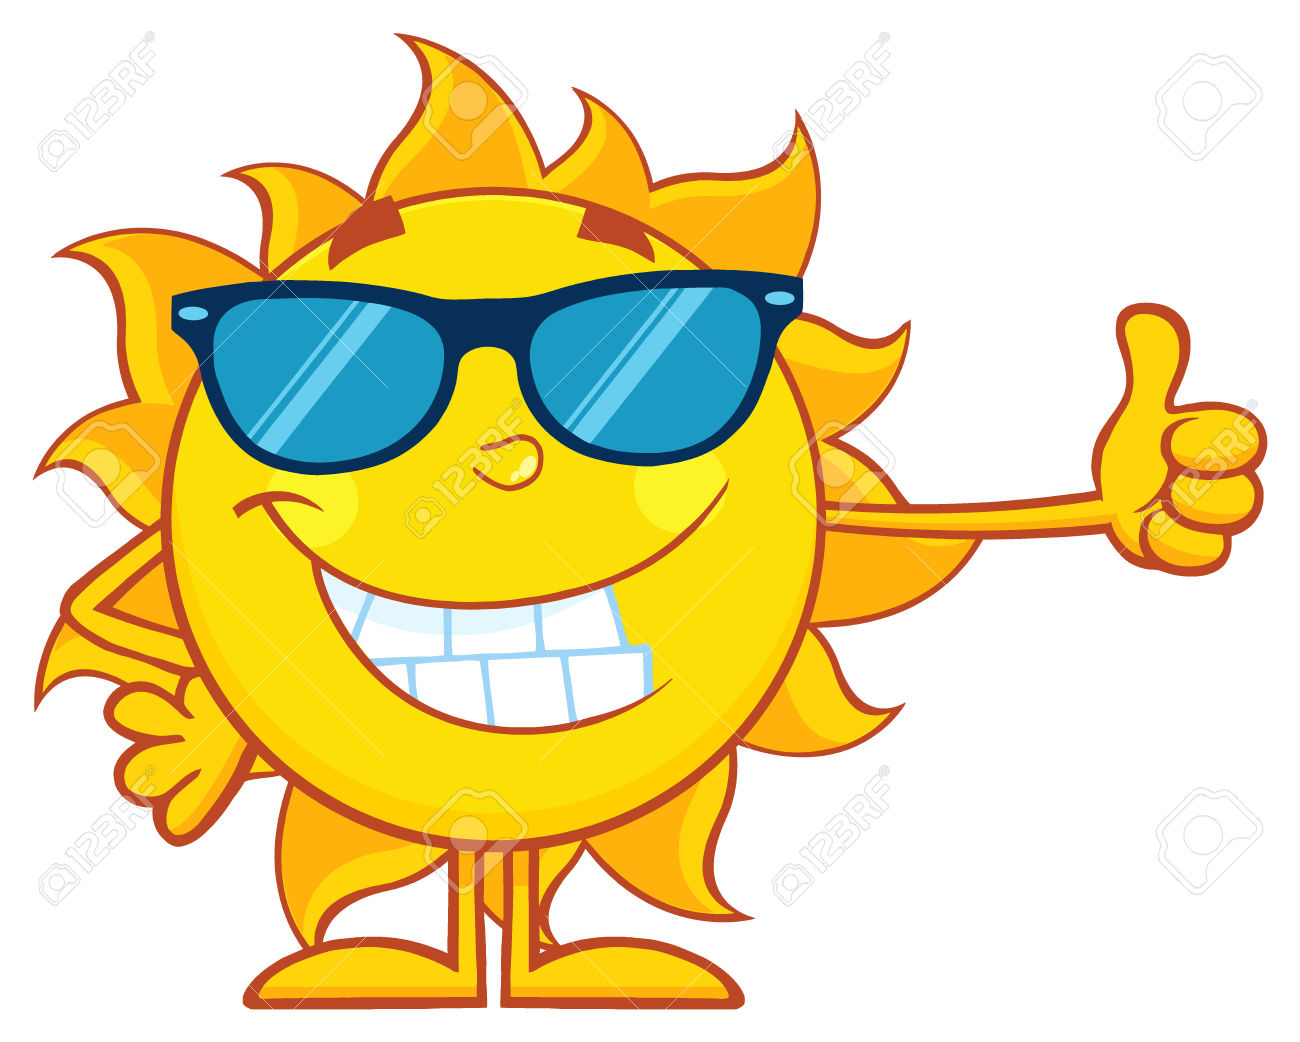 cartoon sunshine pictures free download best cartoon Thank You Smiley Face Clip Art Free Winking Smiley Face Clip Art